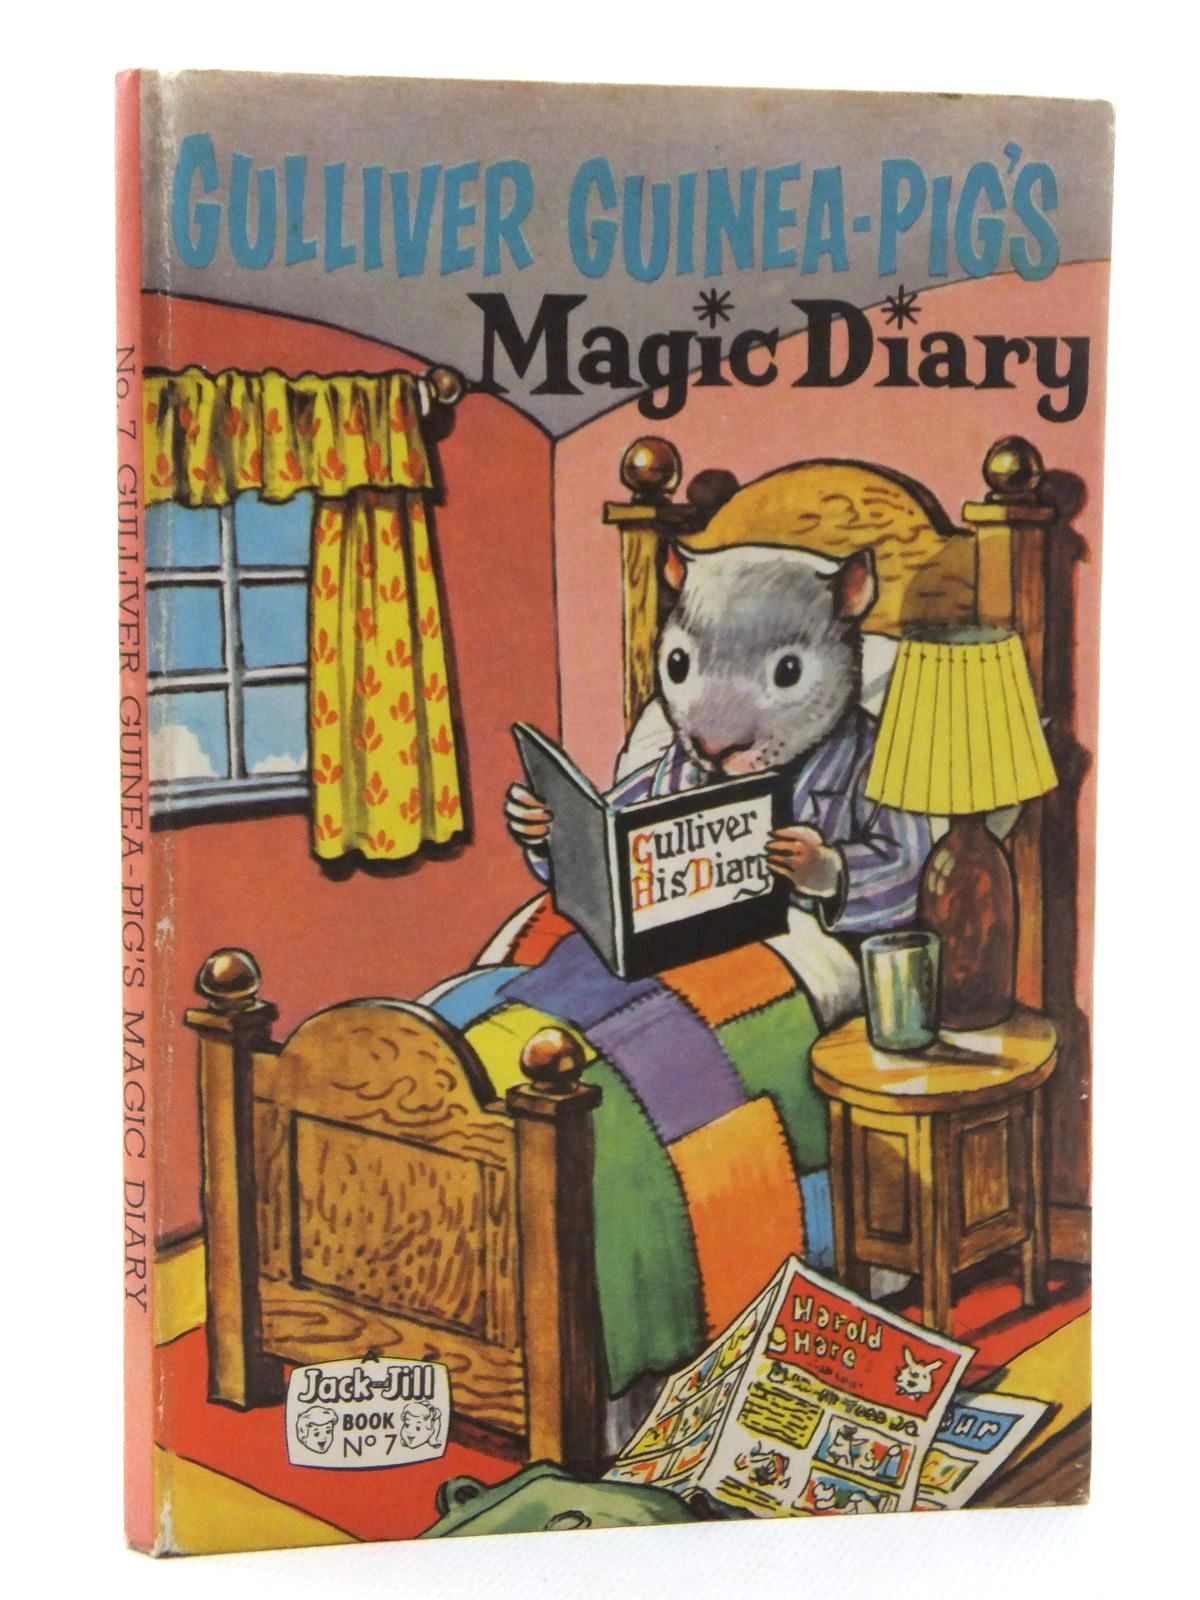 Photo of GULLIVER GUINEA-PIG'S MAGIC DIARY published by Fleetway Publications Ltd. (STOCK CODE: 1317109)  for sale by Stella & Rose's Books